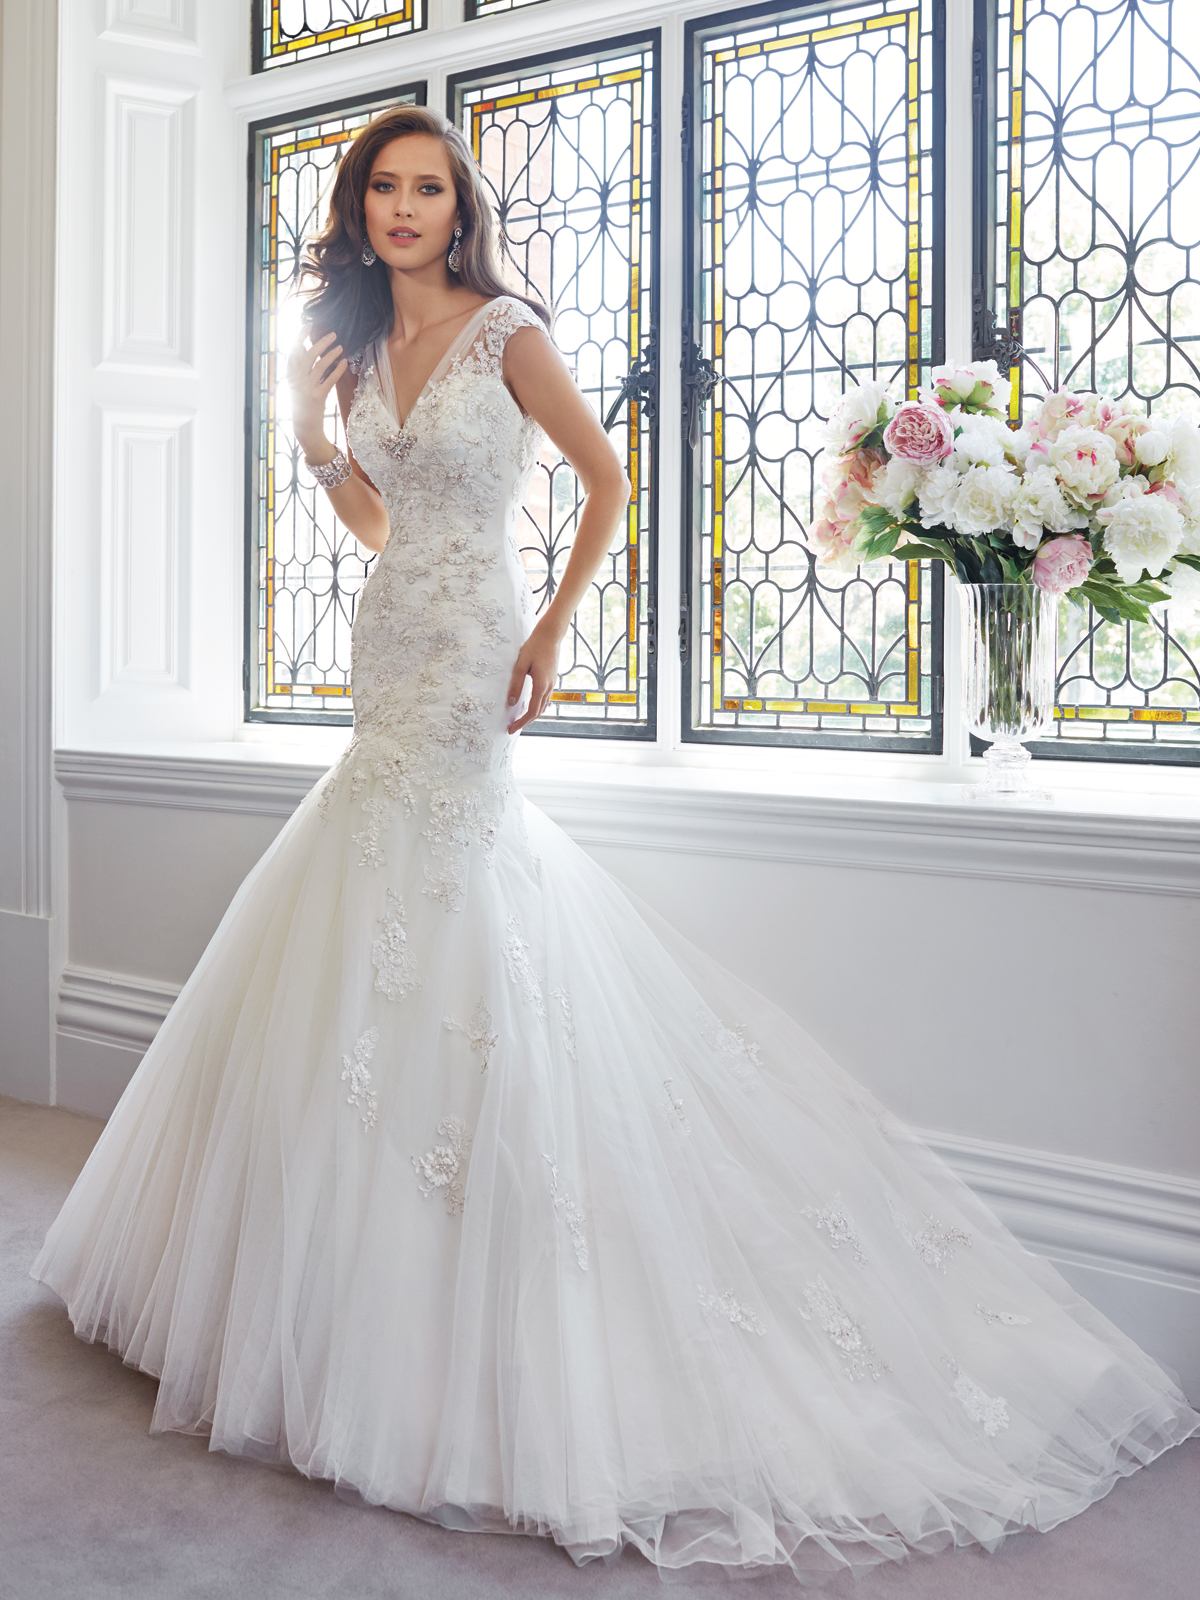 Sophia tolli wedding dresses 2014 collection modwedding sophia tolli wedding dresses 22 06212014nz ombrellifo Image collections